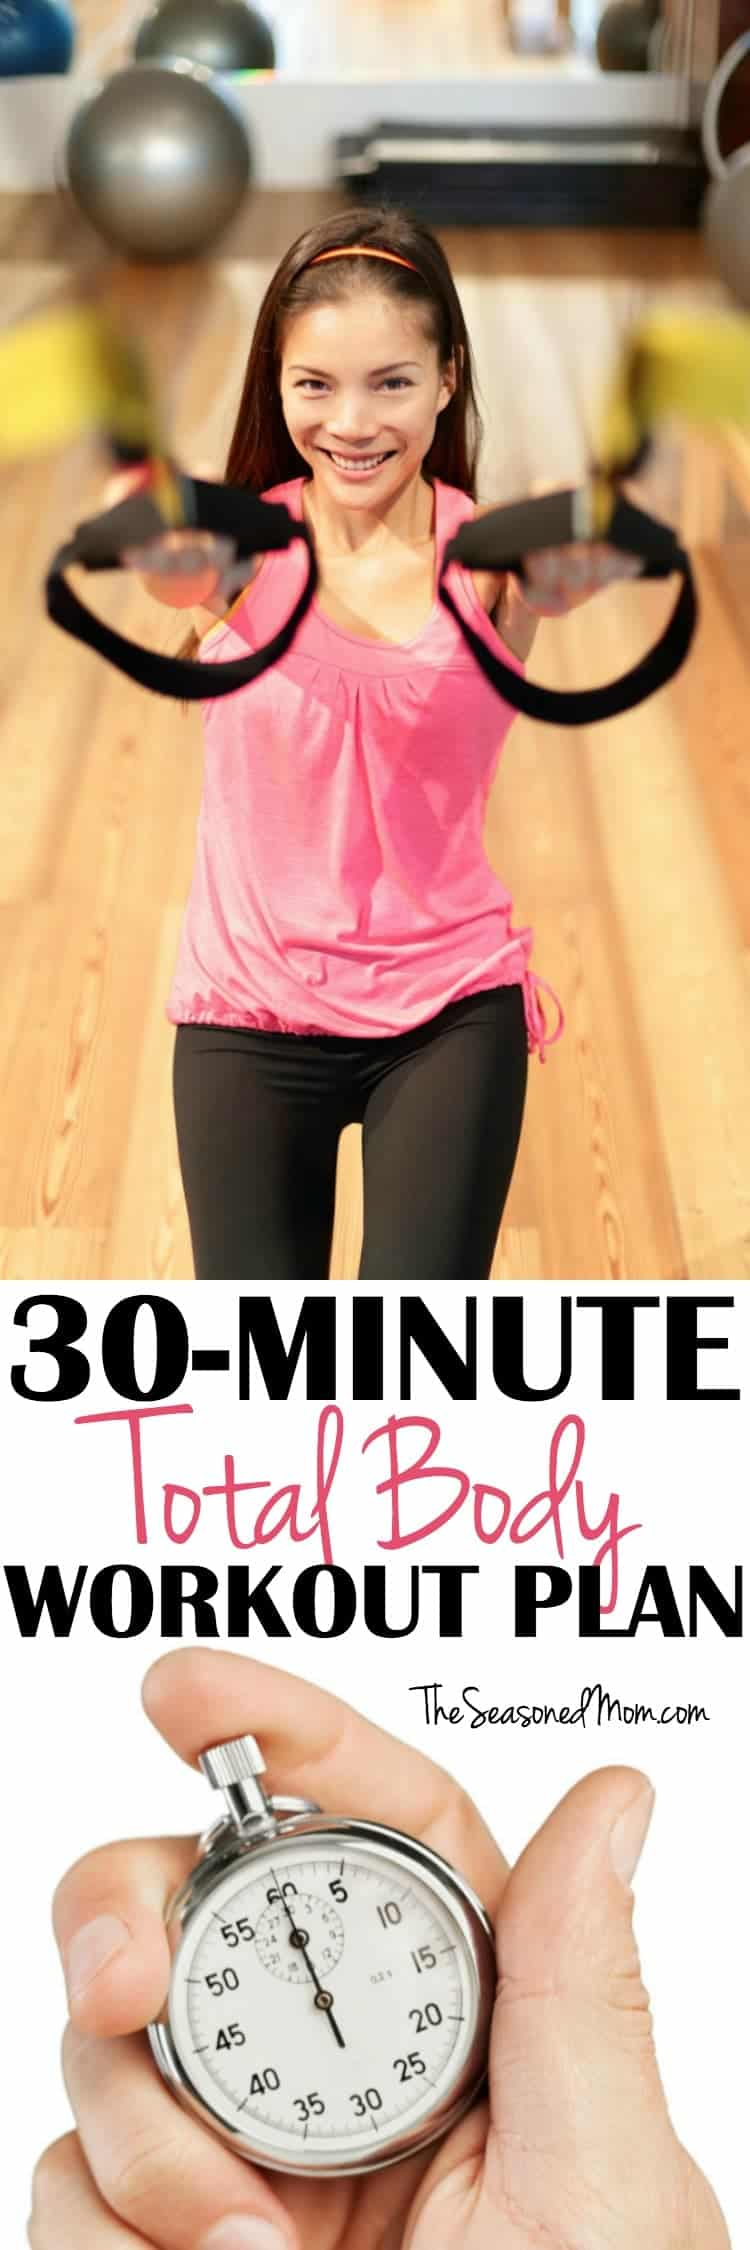 This 30-Minute Total Body Workout Plan includes strength and cardio for an efficient exercise routine that will make you WORK!